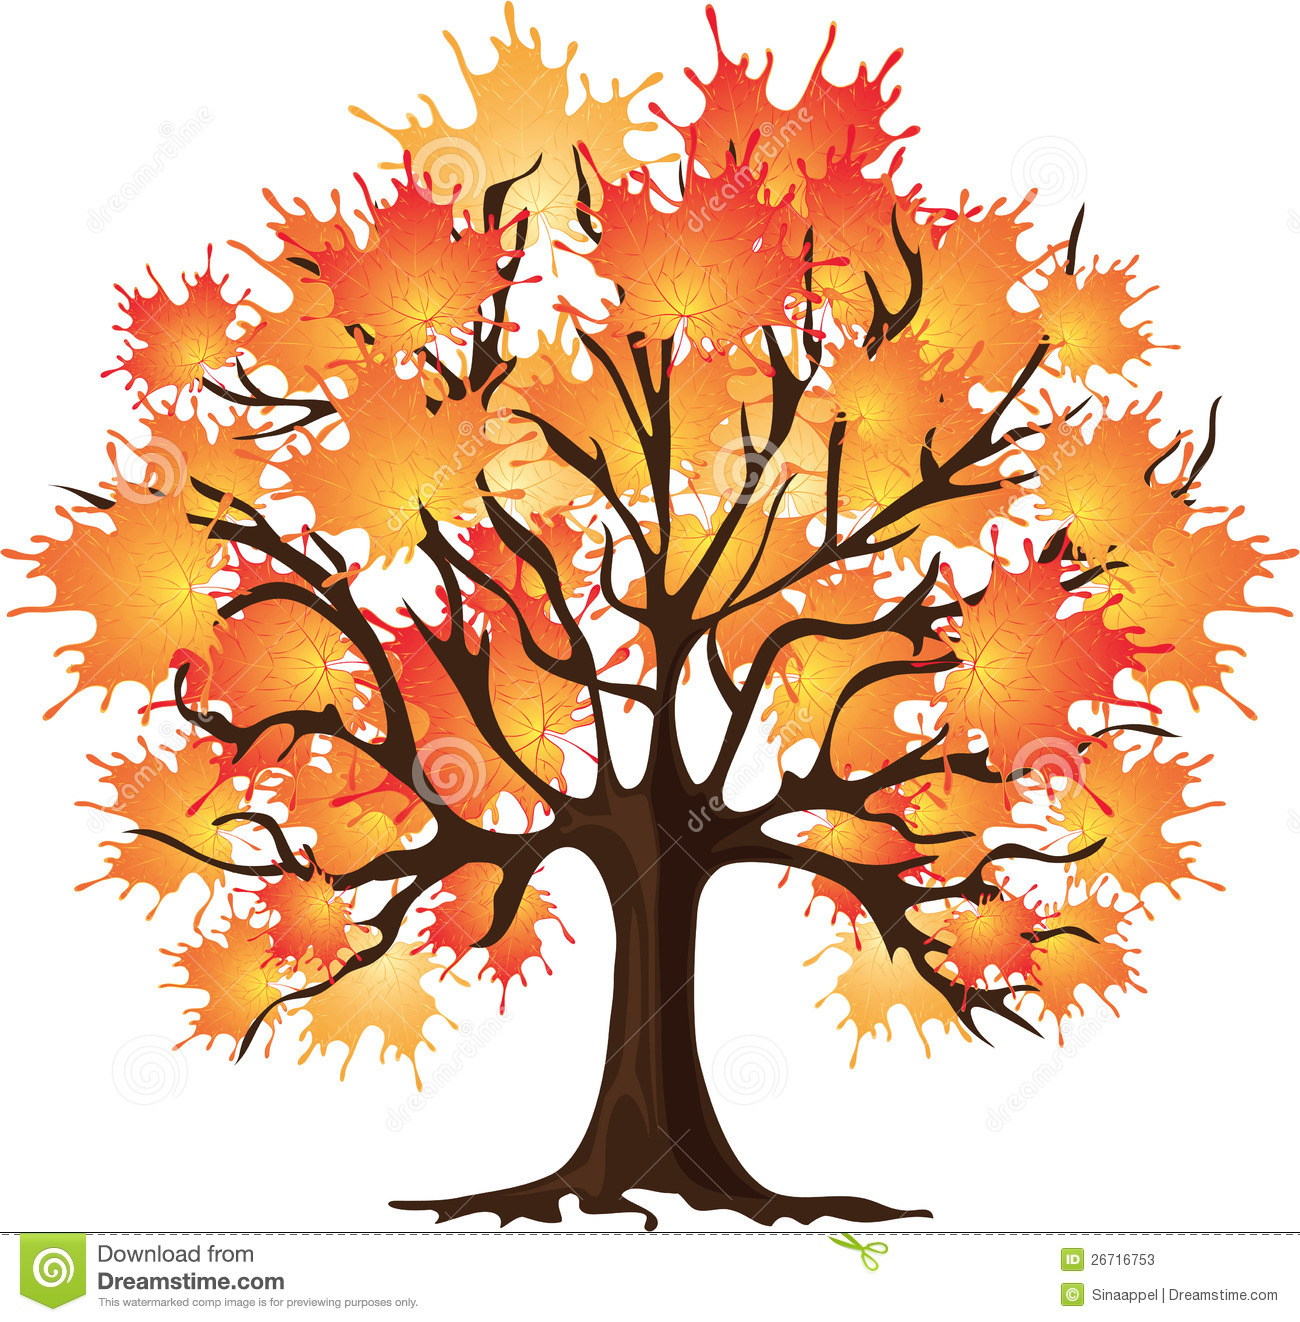 Clipart sugar maple tree.